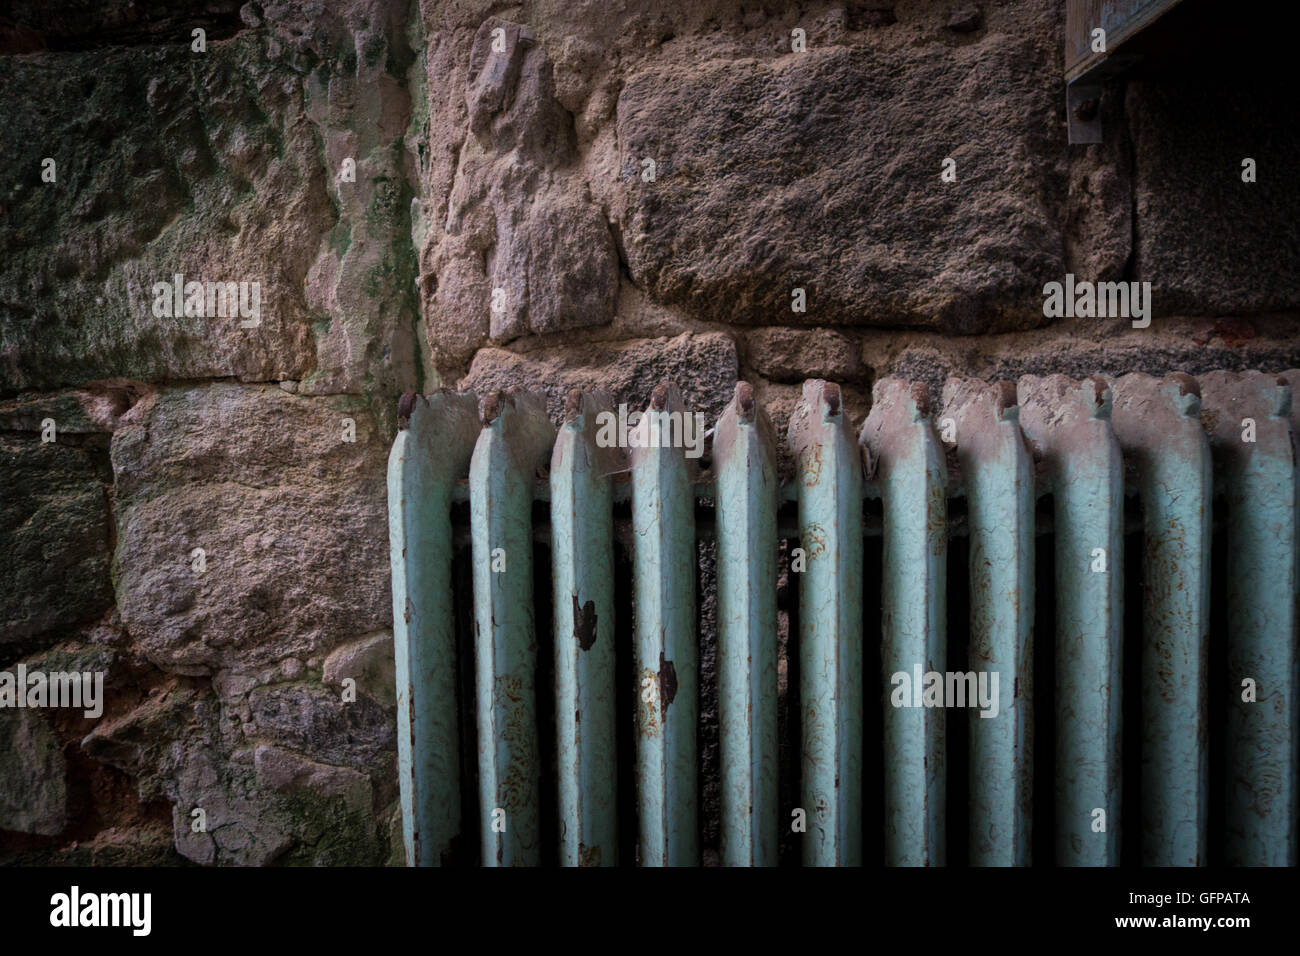 A green radiator against a stone wall - Stock Image